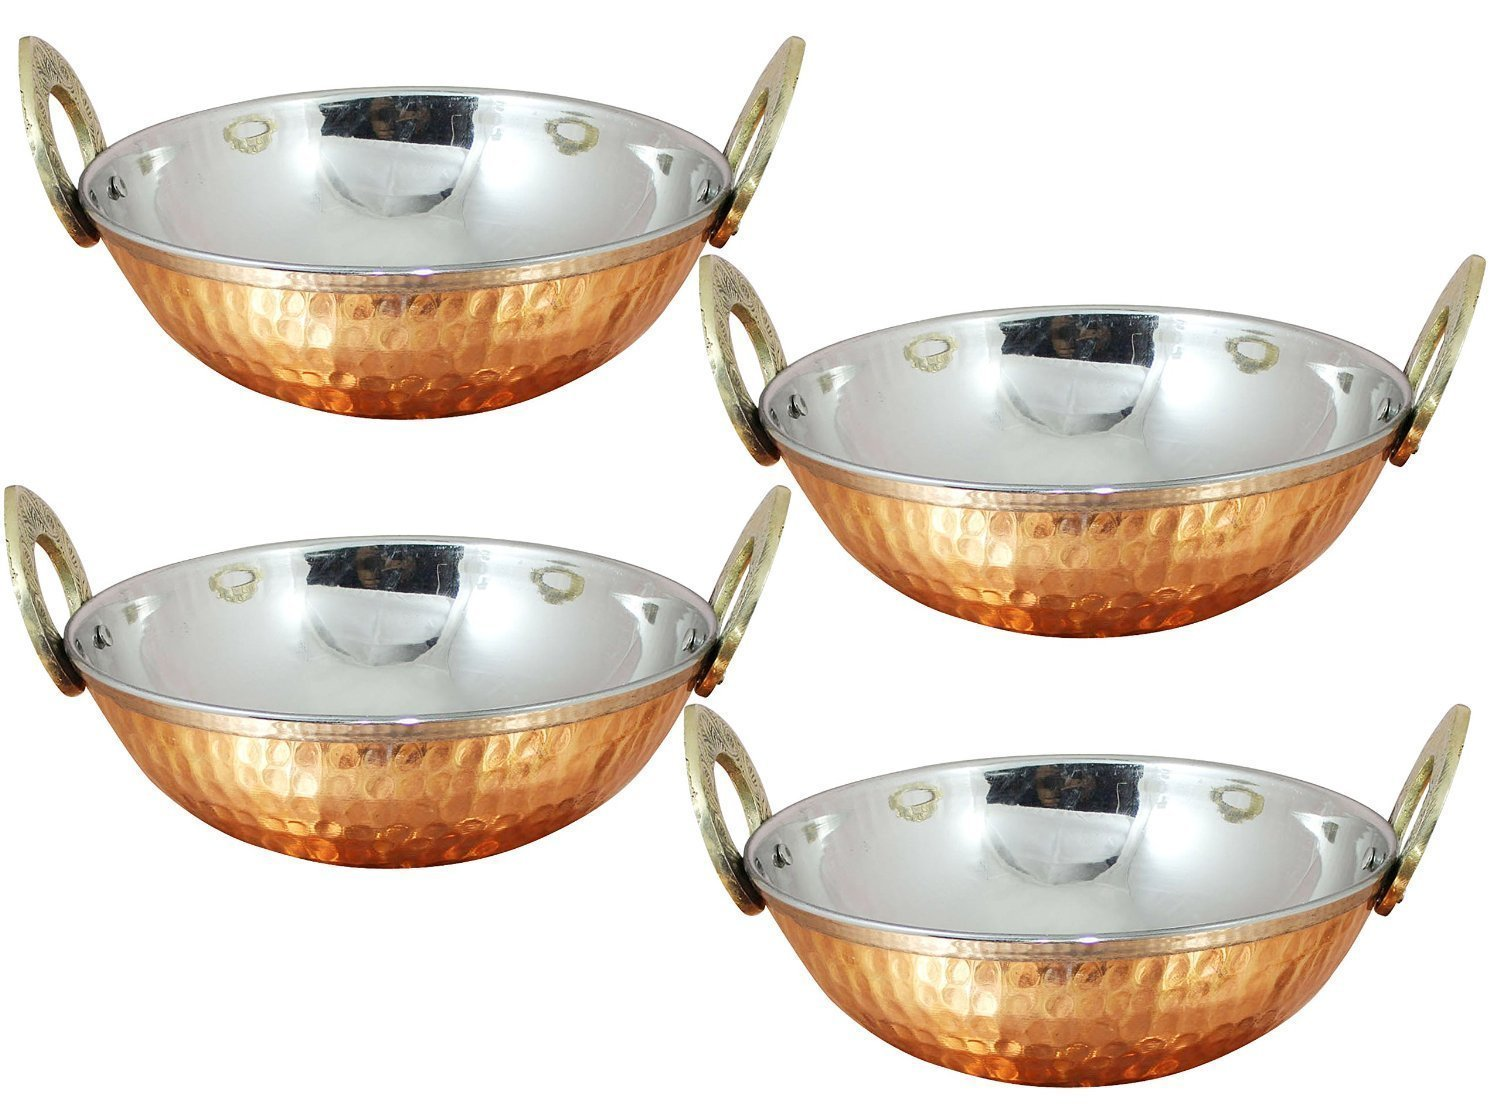 Sunshine Set of 4, Indian Copper Serveware Karahi Vegetable Dinner Bowl with Handle for Indian Food, Diameter 6 Inches